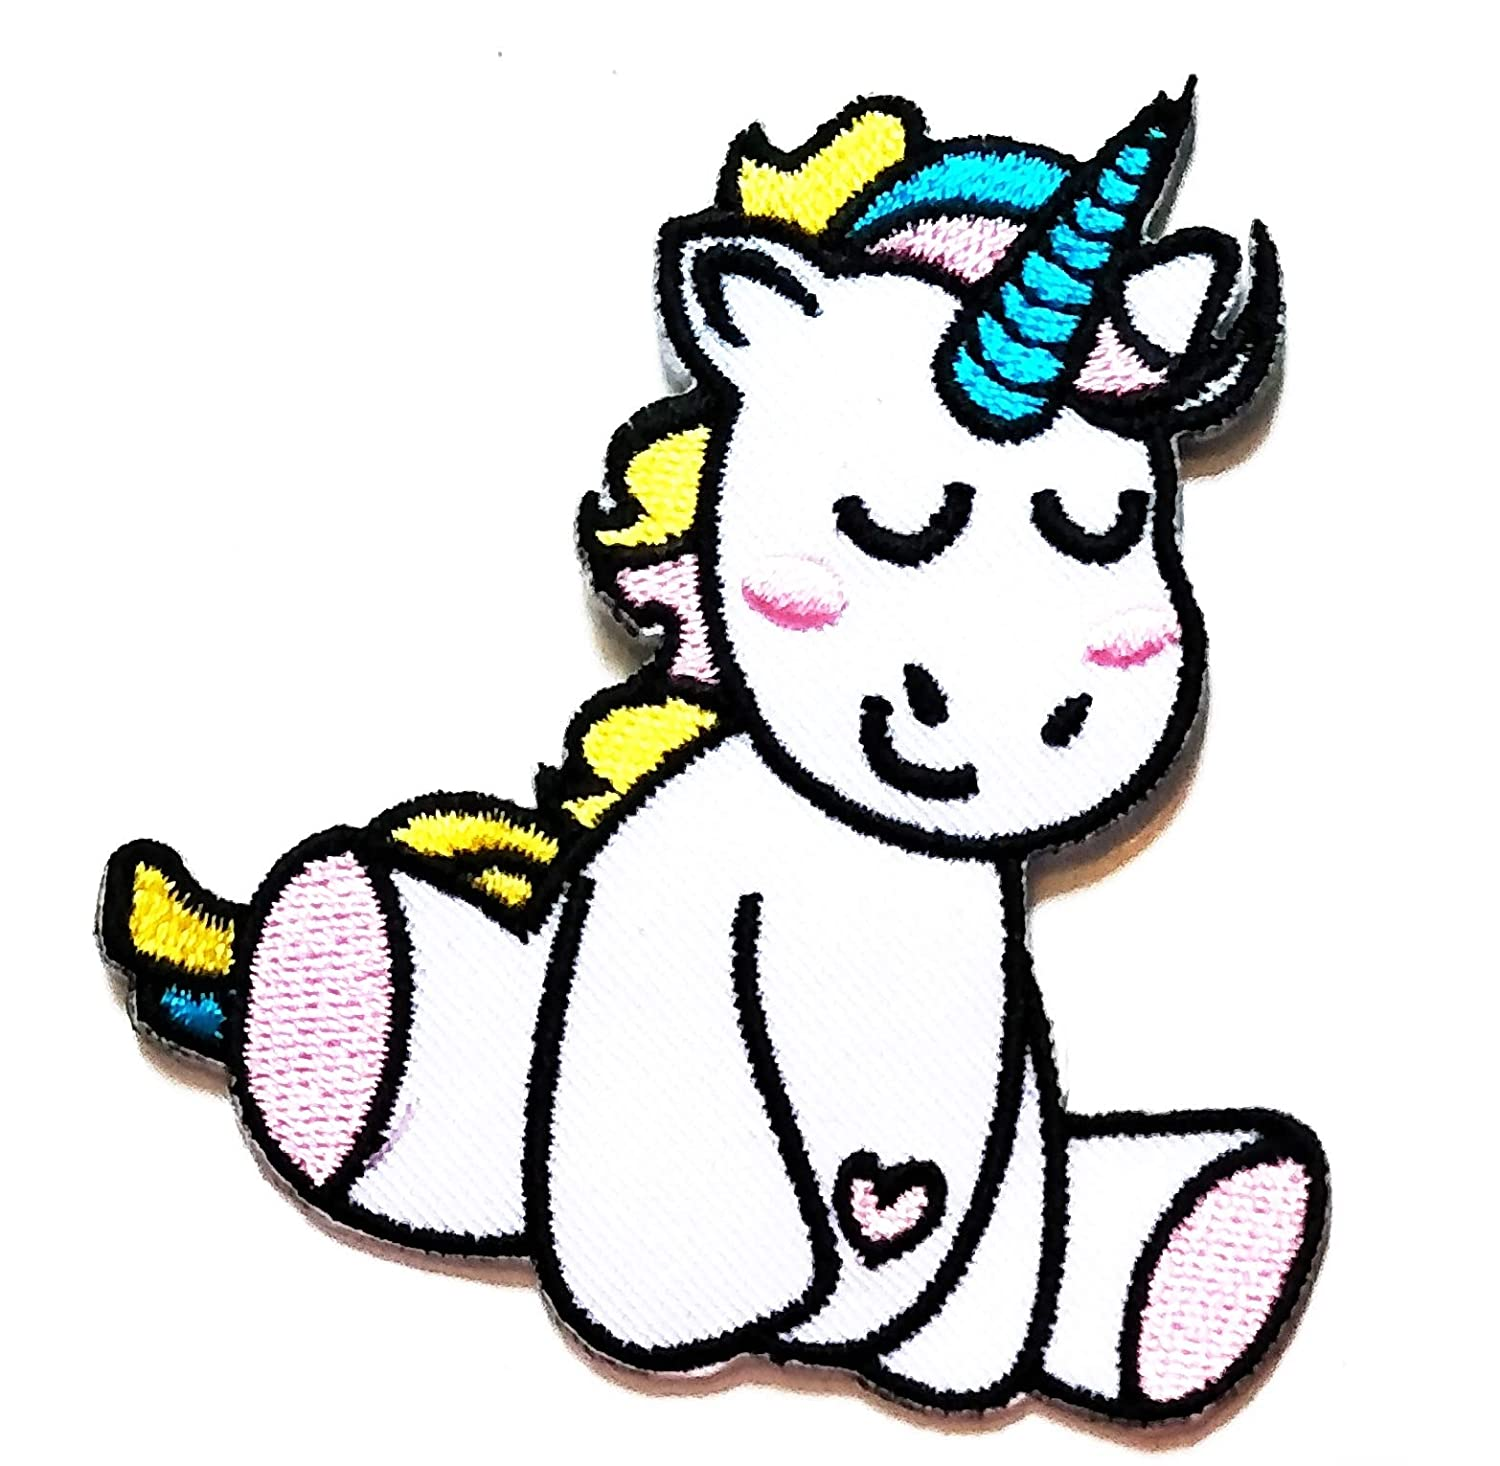 3'' X 3.2'' Cute Unicorn Horse sit Cartoon Kids Logo Jacket t-Shirt Jeans Polo Patch Iron on Embroidered Logo Sign Badge Comics Cartoon Patch by Tour les jours Shop